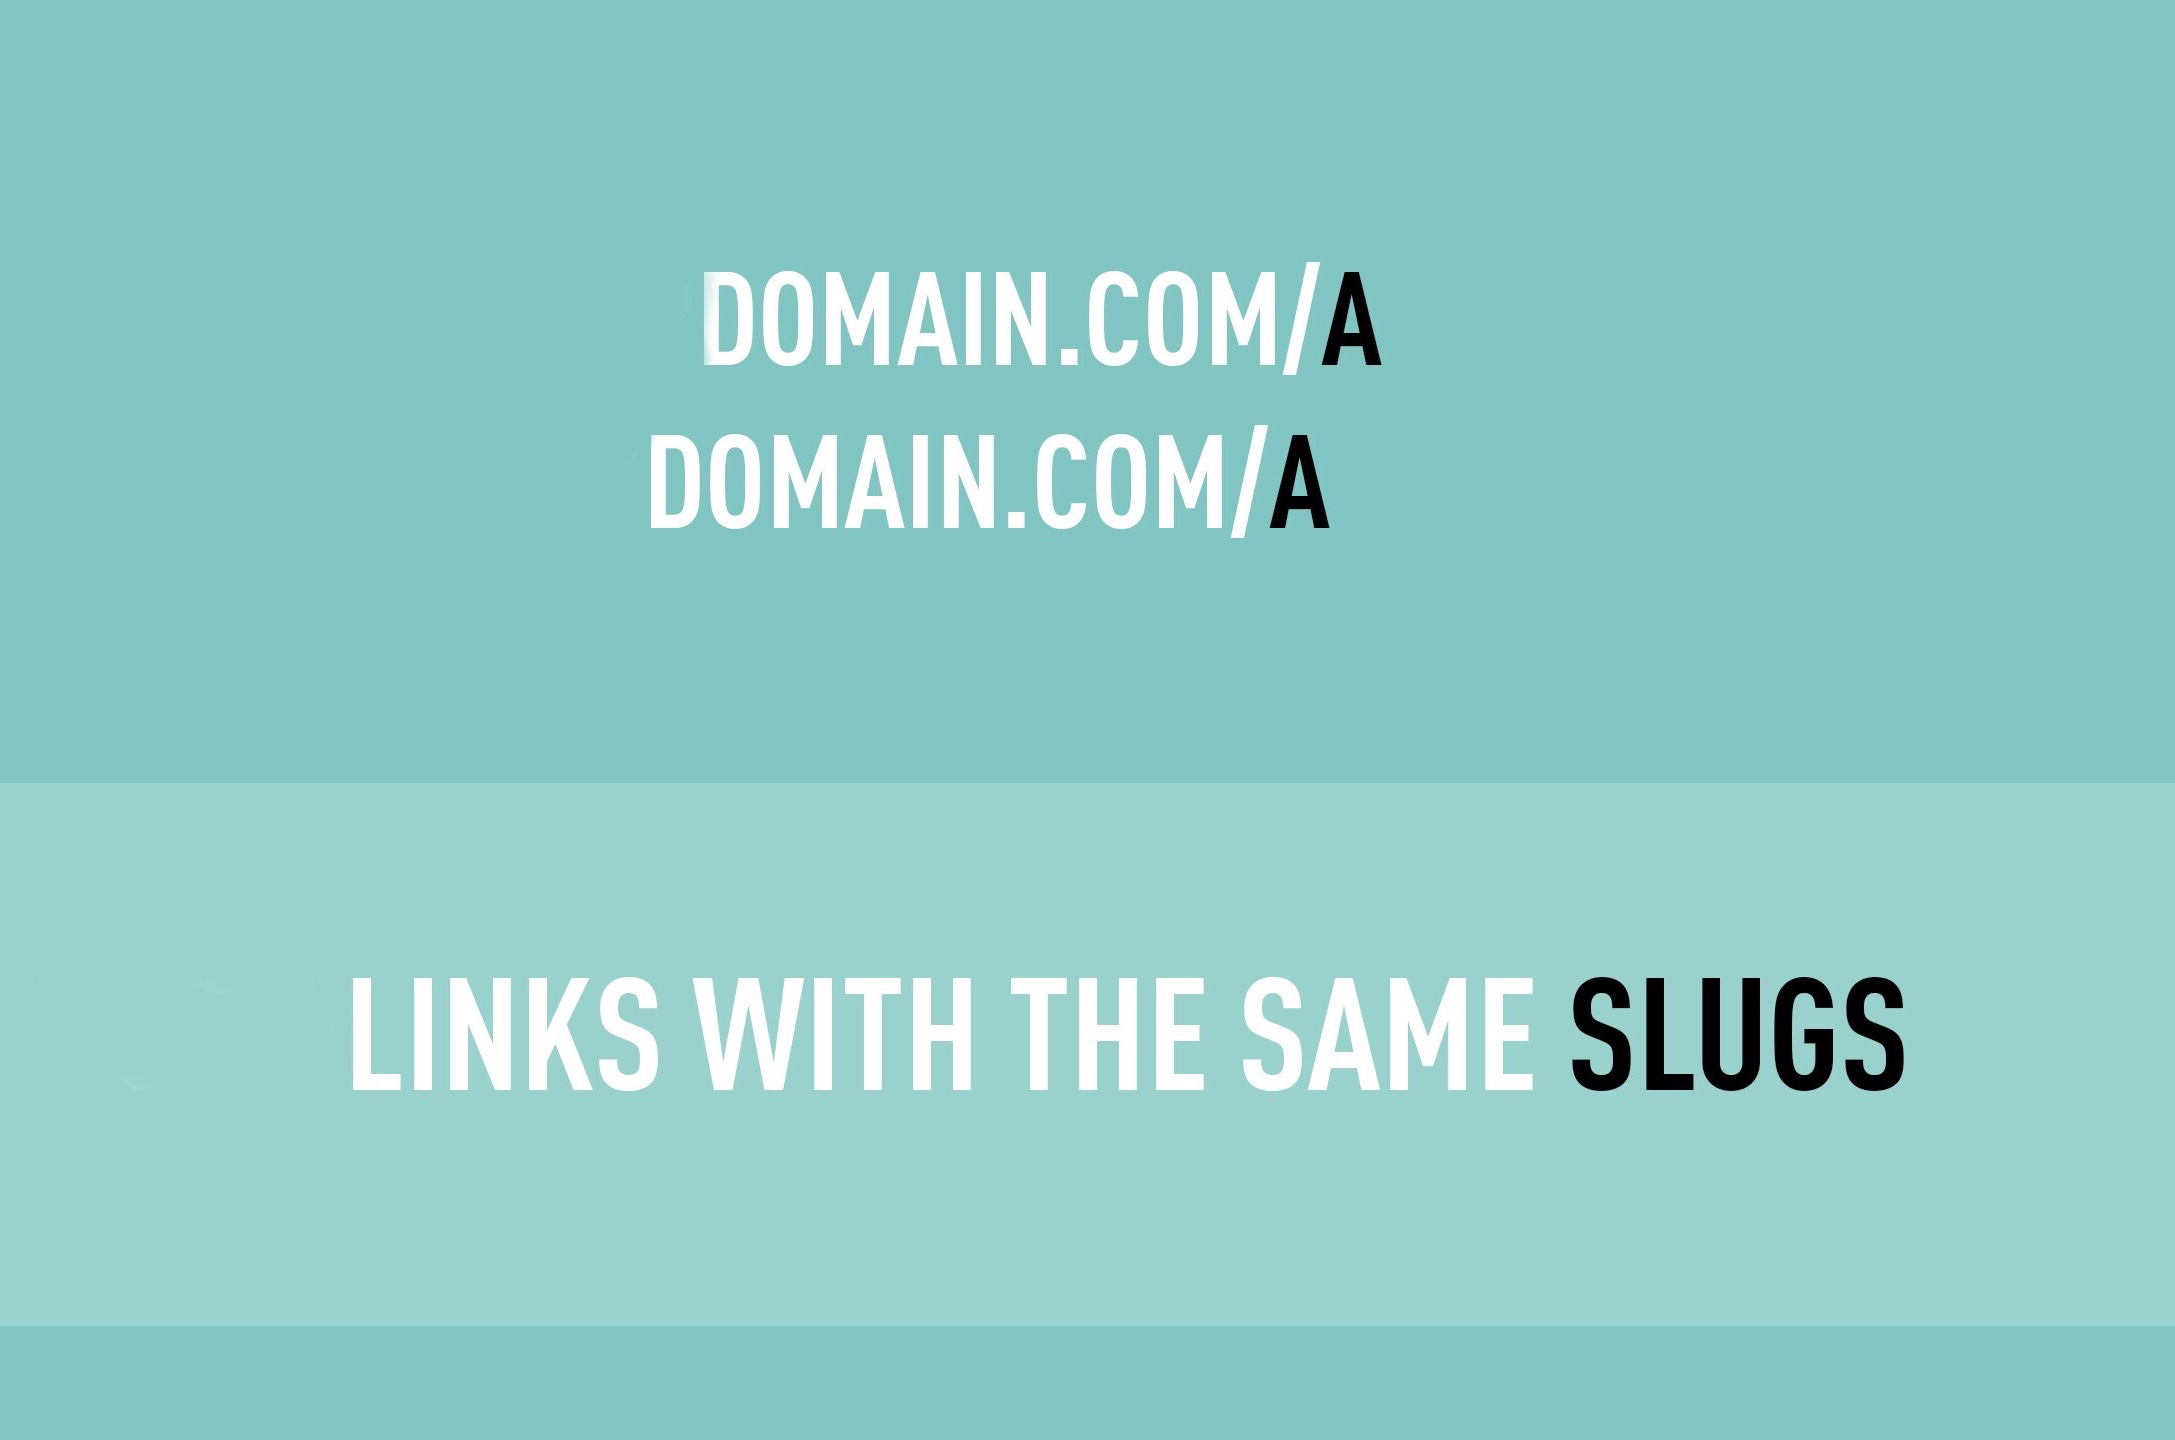 Links with the same slugs: Why not?